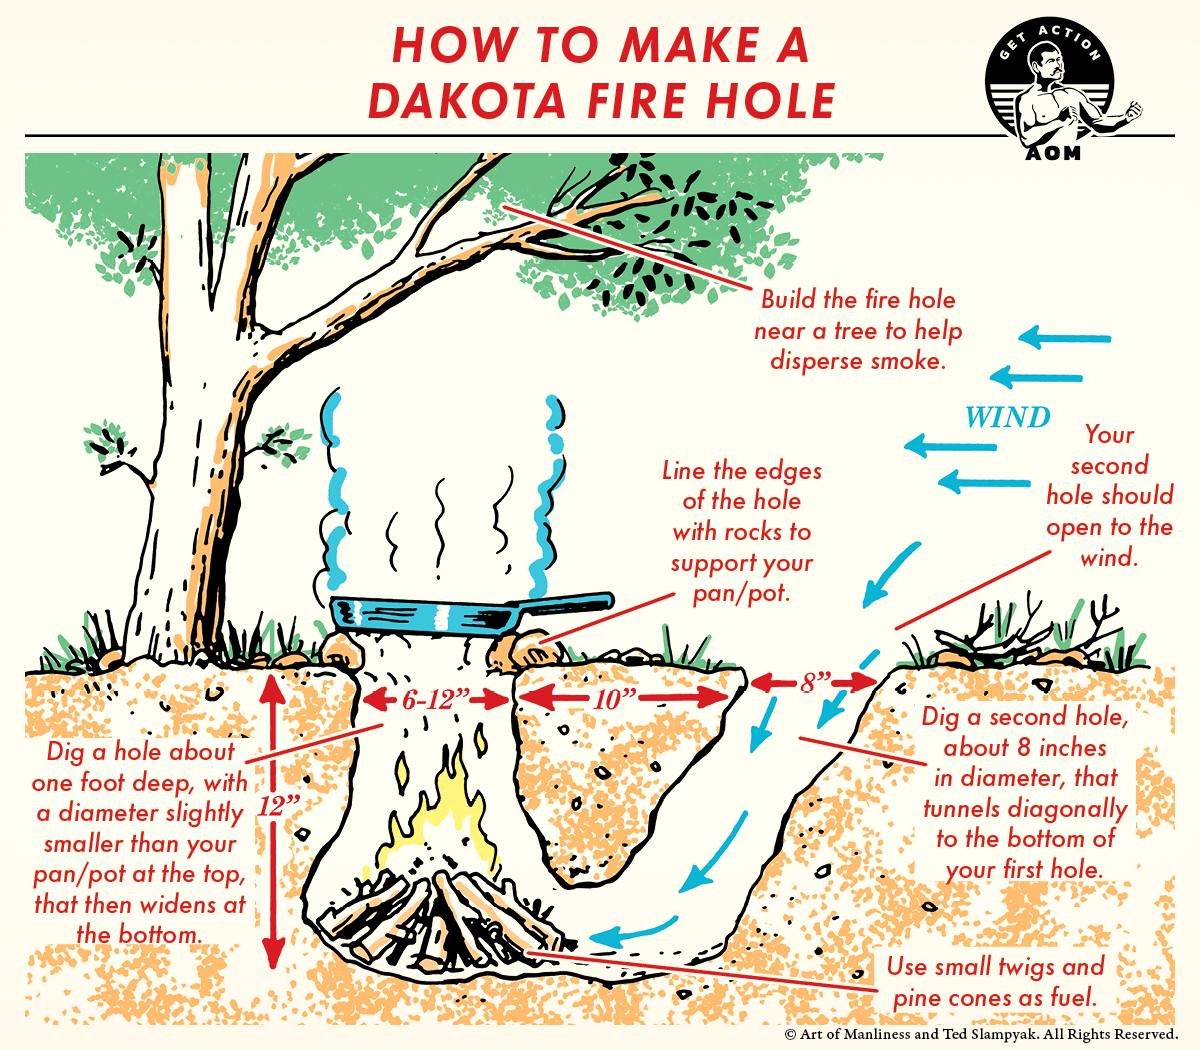 How To Make A Dakota Fire Hole The Art Of Manliness